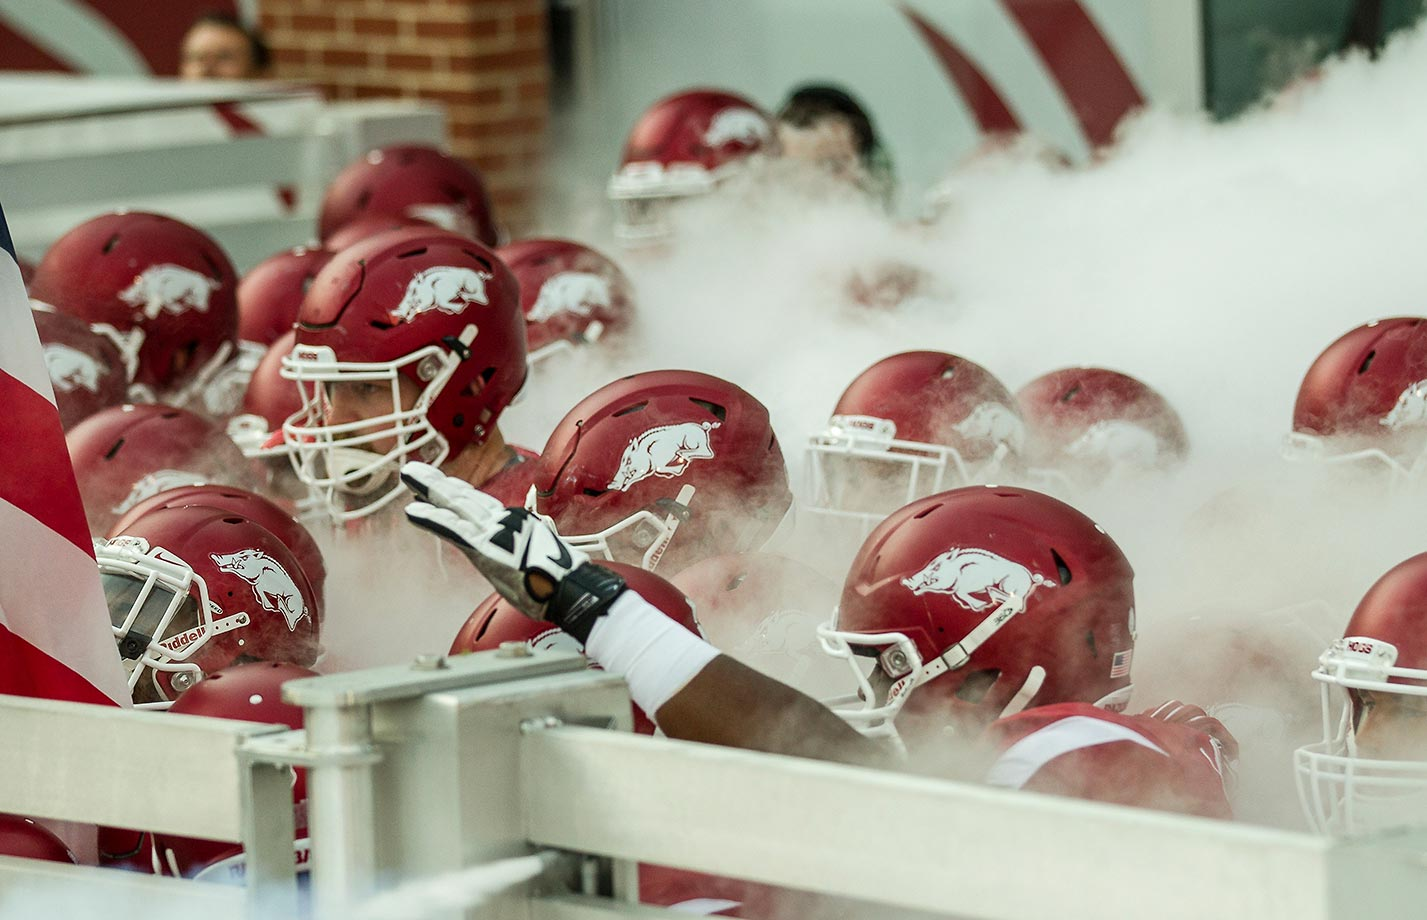 The Arkansas Razorbacks ready to enter the field before a game against the Texas Tech Red Raiders in Fayetteville.